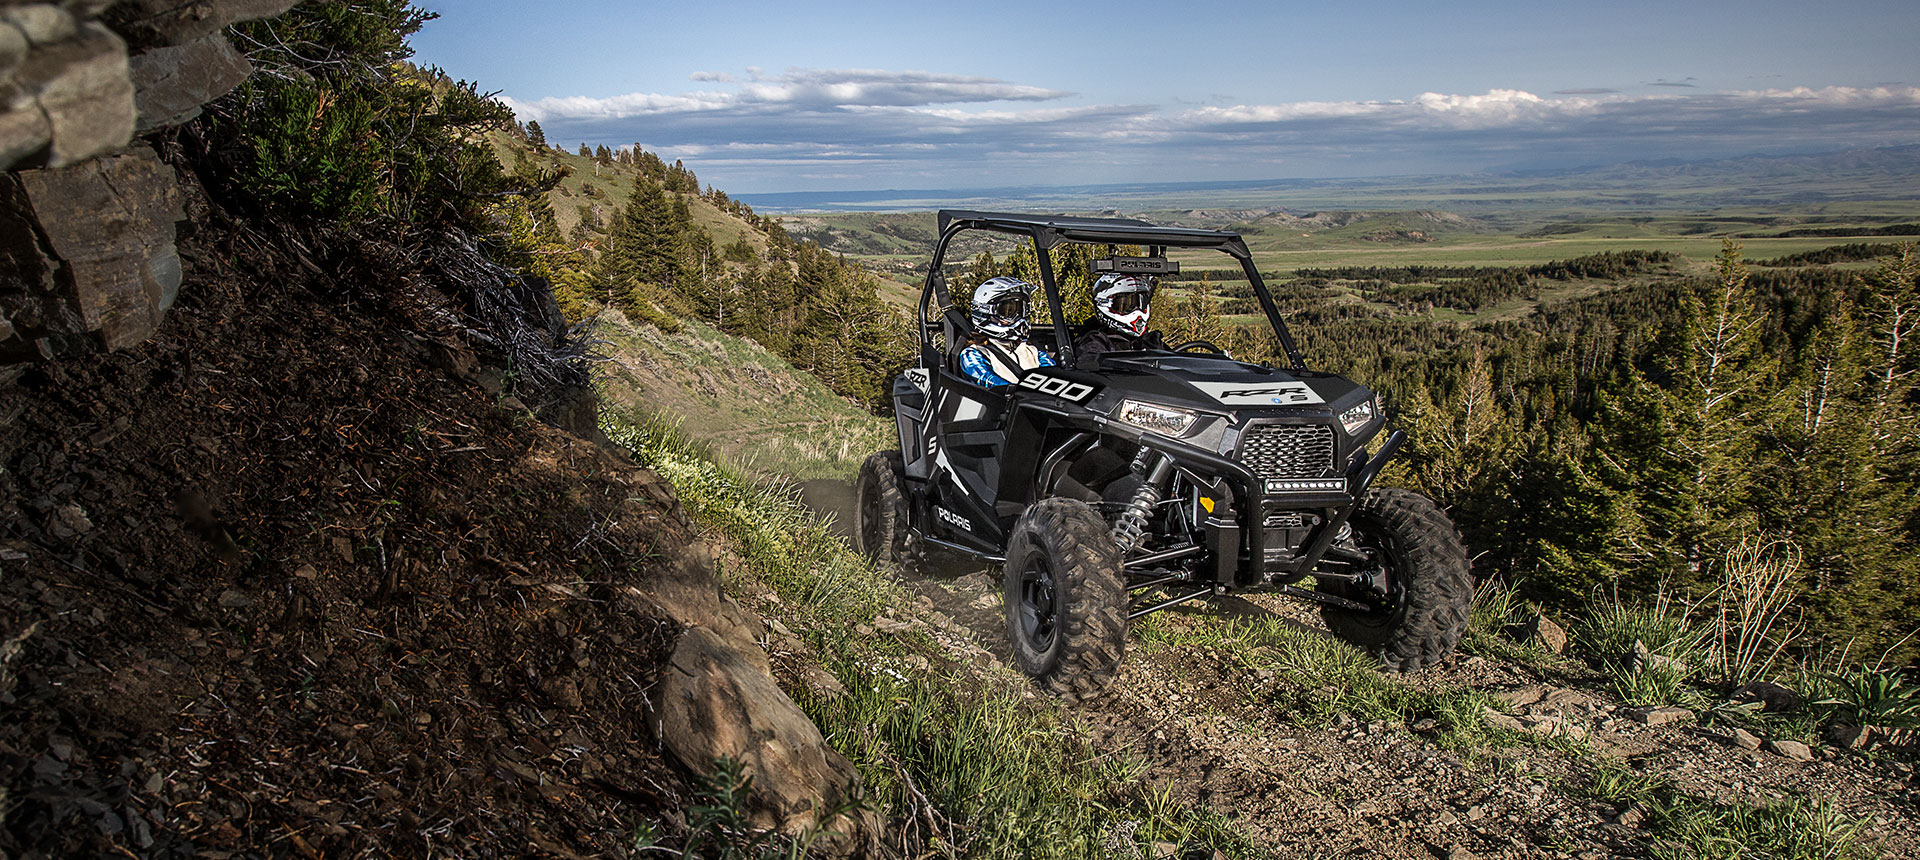 2019 Polaris RZR S 900 in Elkhart, Indiana